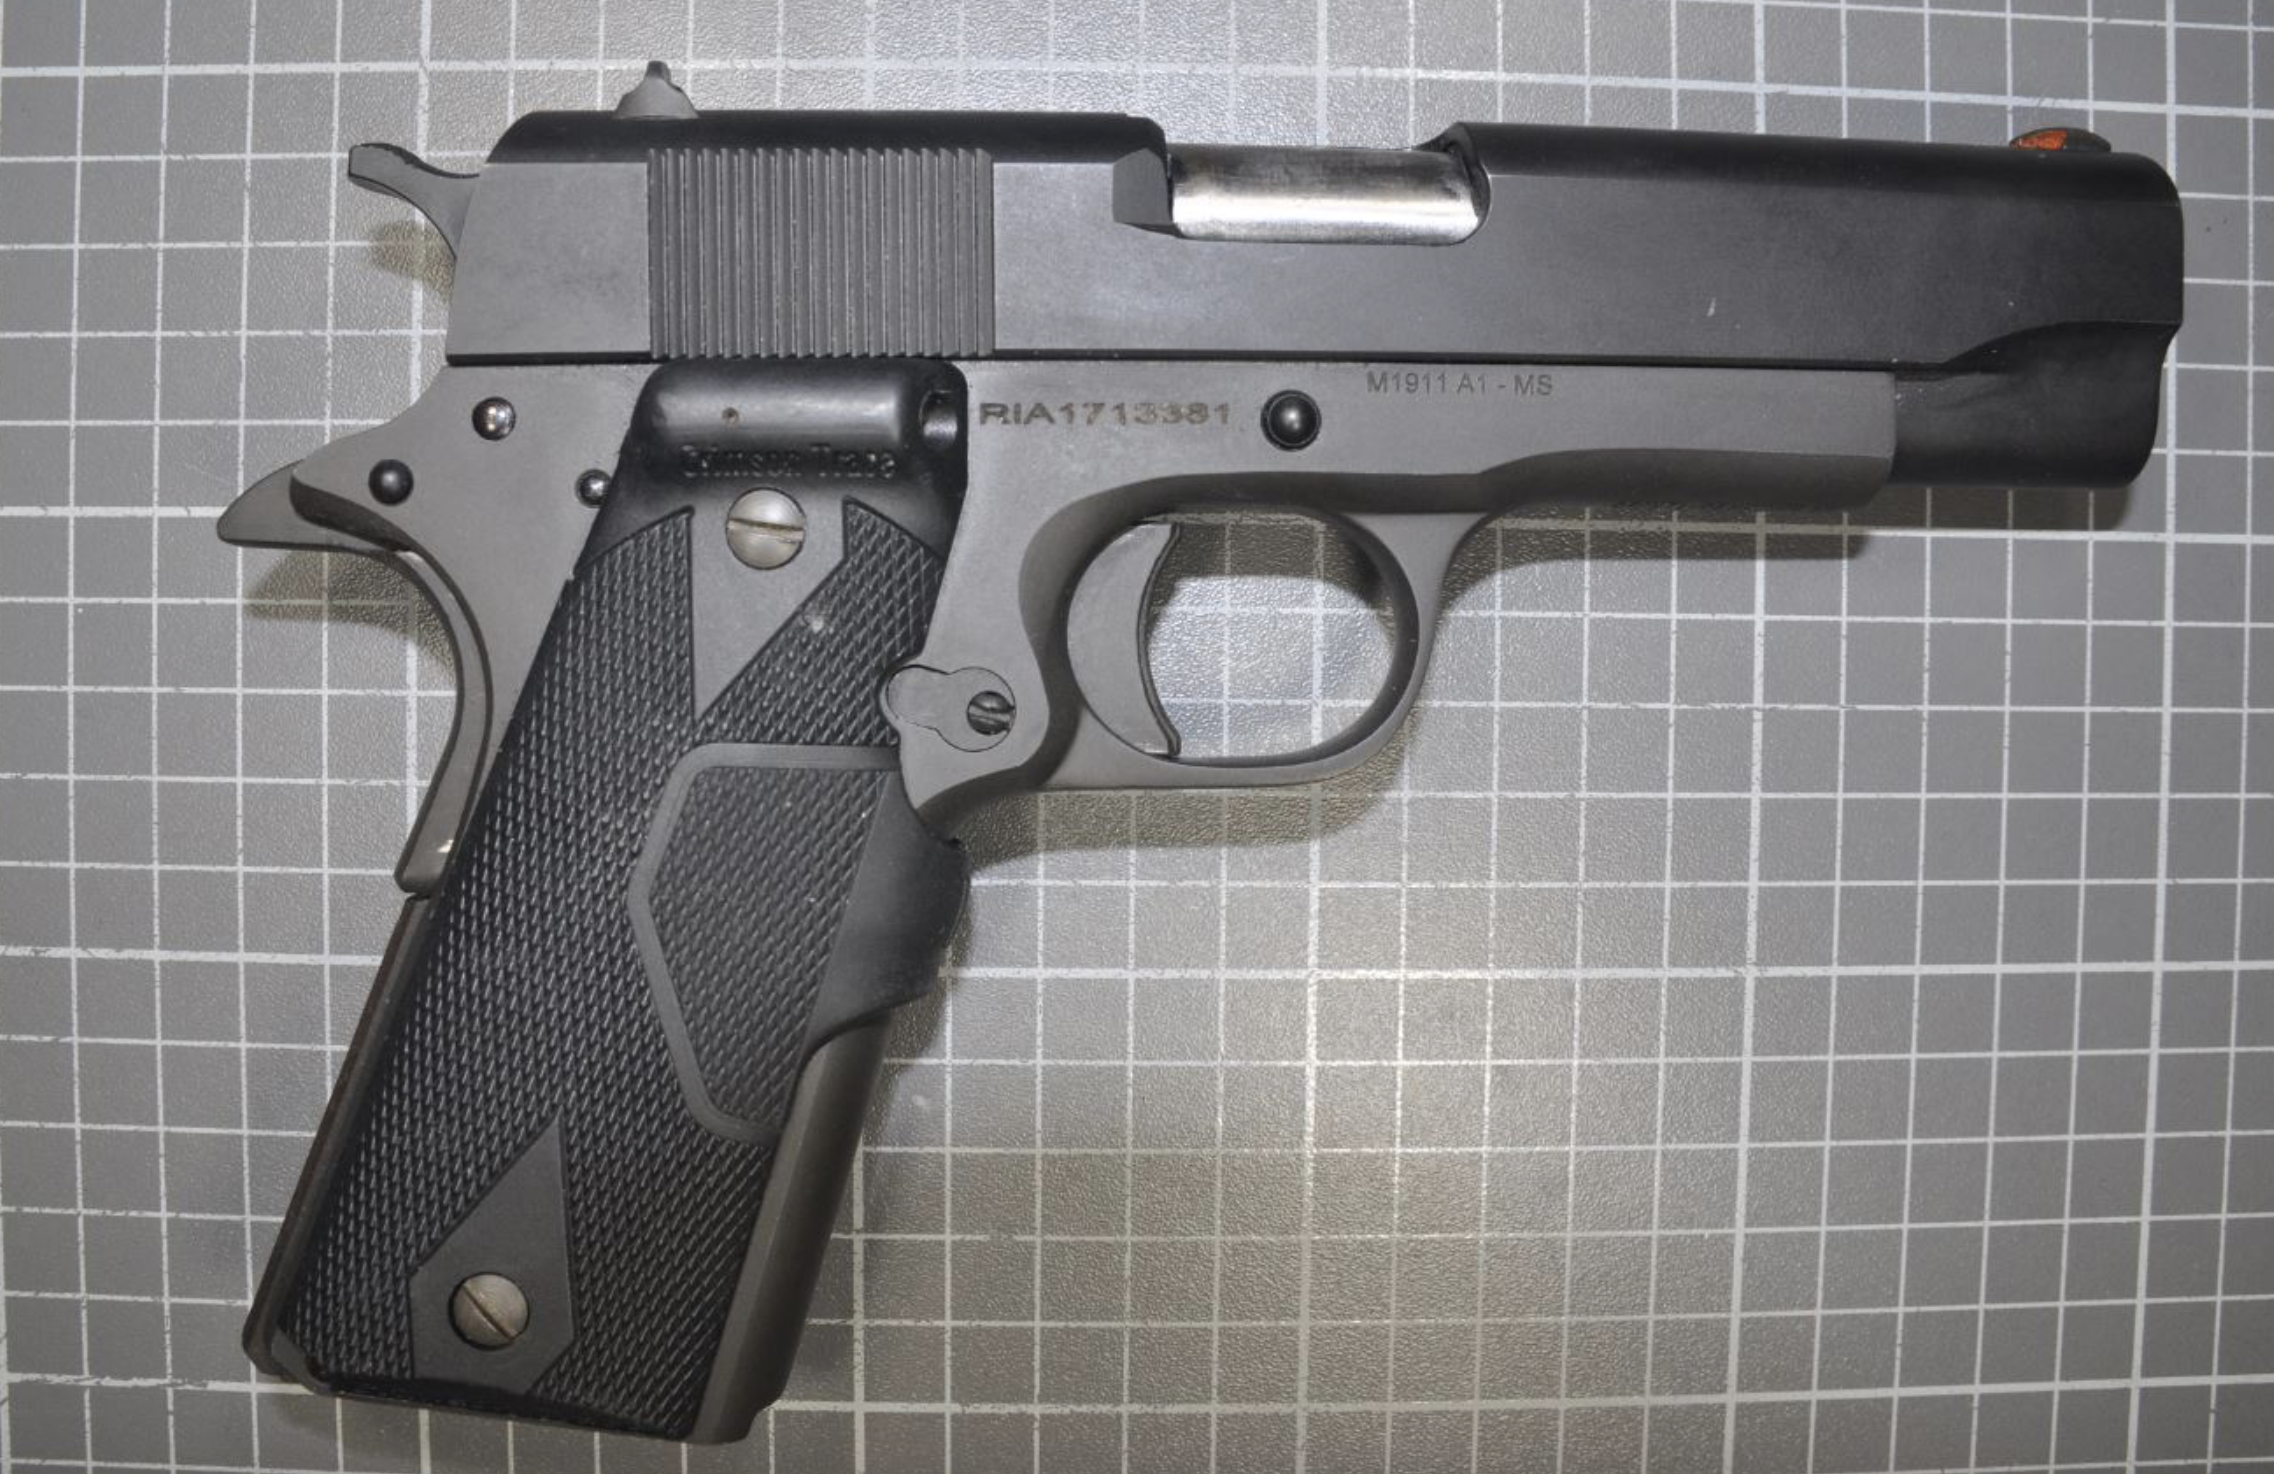 A man is facing gun charges after detectives arrested him on an outstanding warrant June 28, 2019, in Evanston.